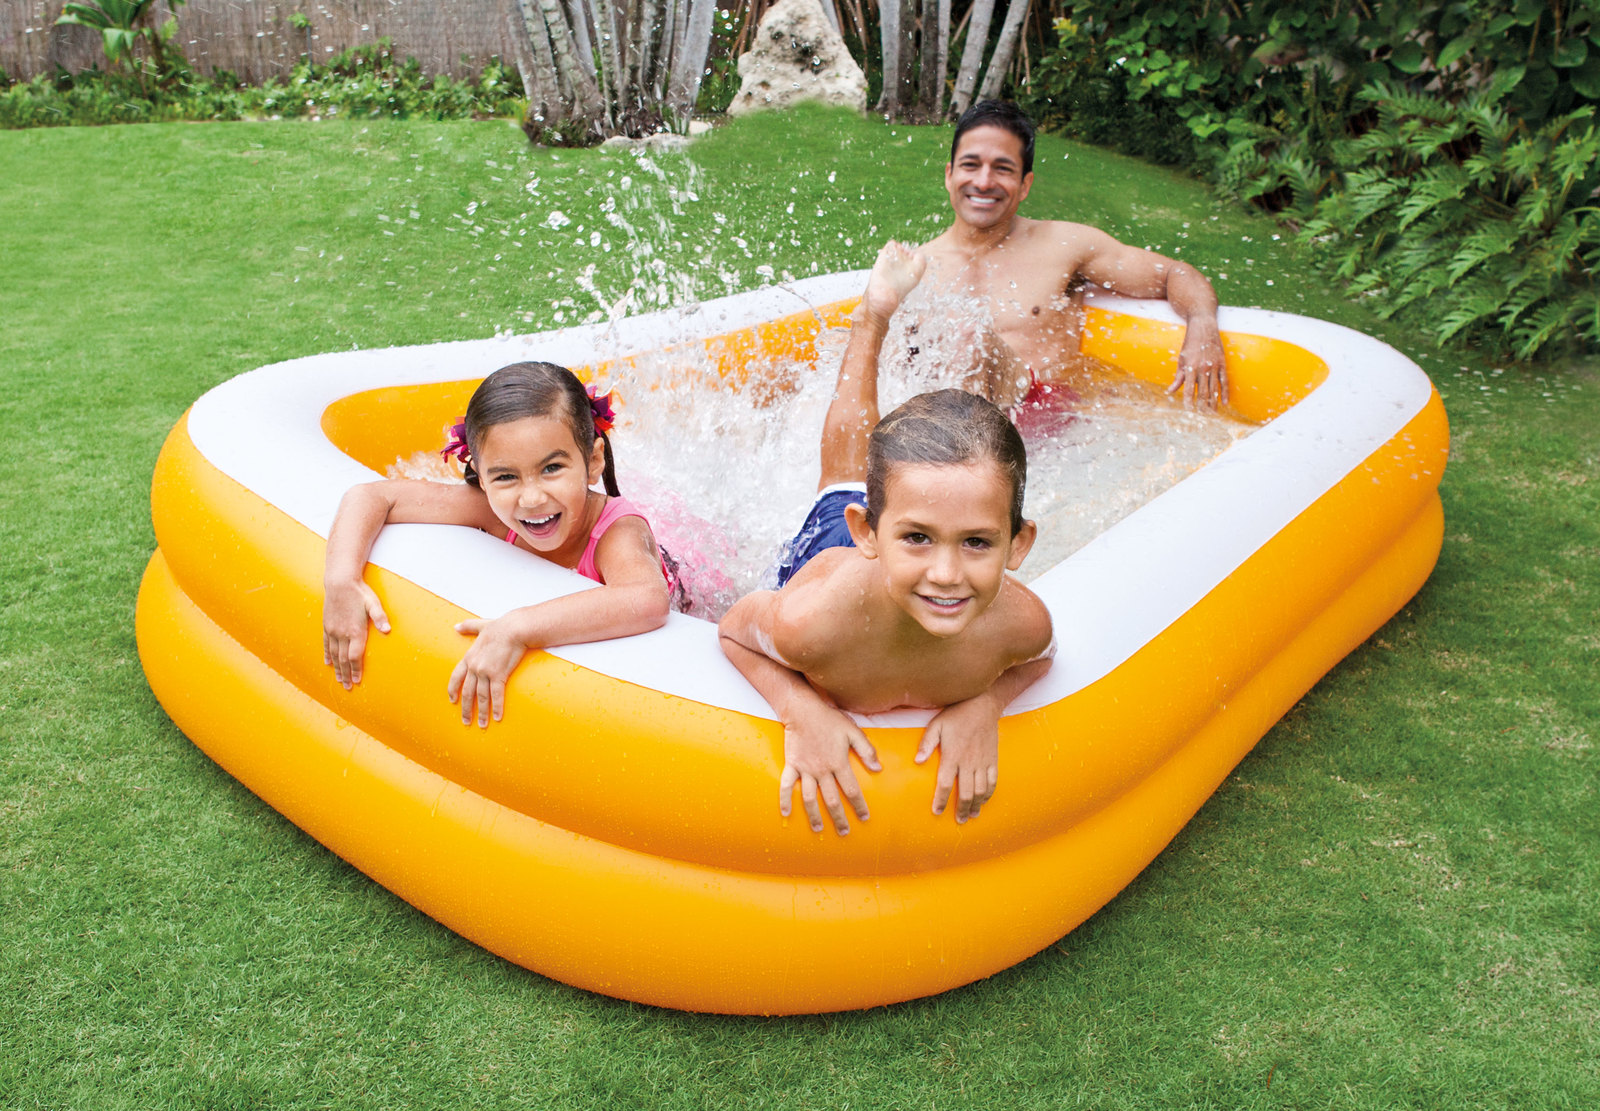 Intex swim center family pool mandarin toy at mighty ape australia for Intex swimming pools australia